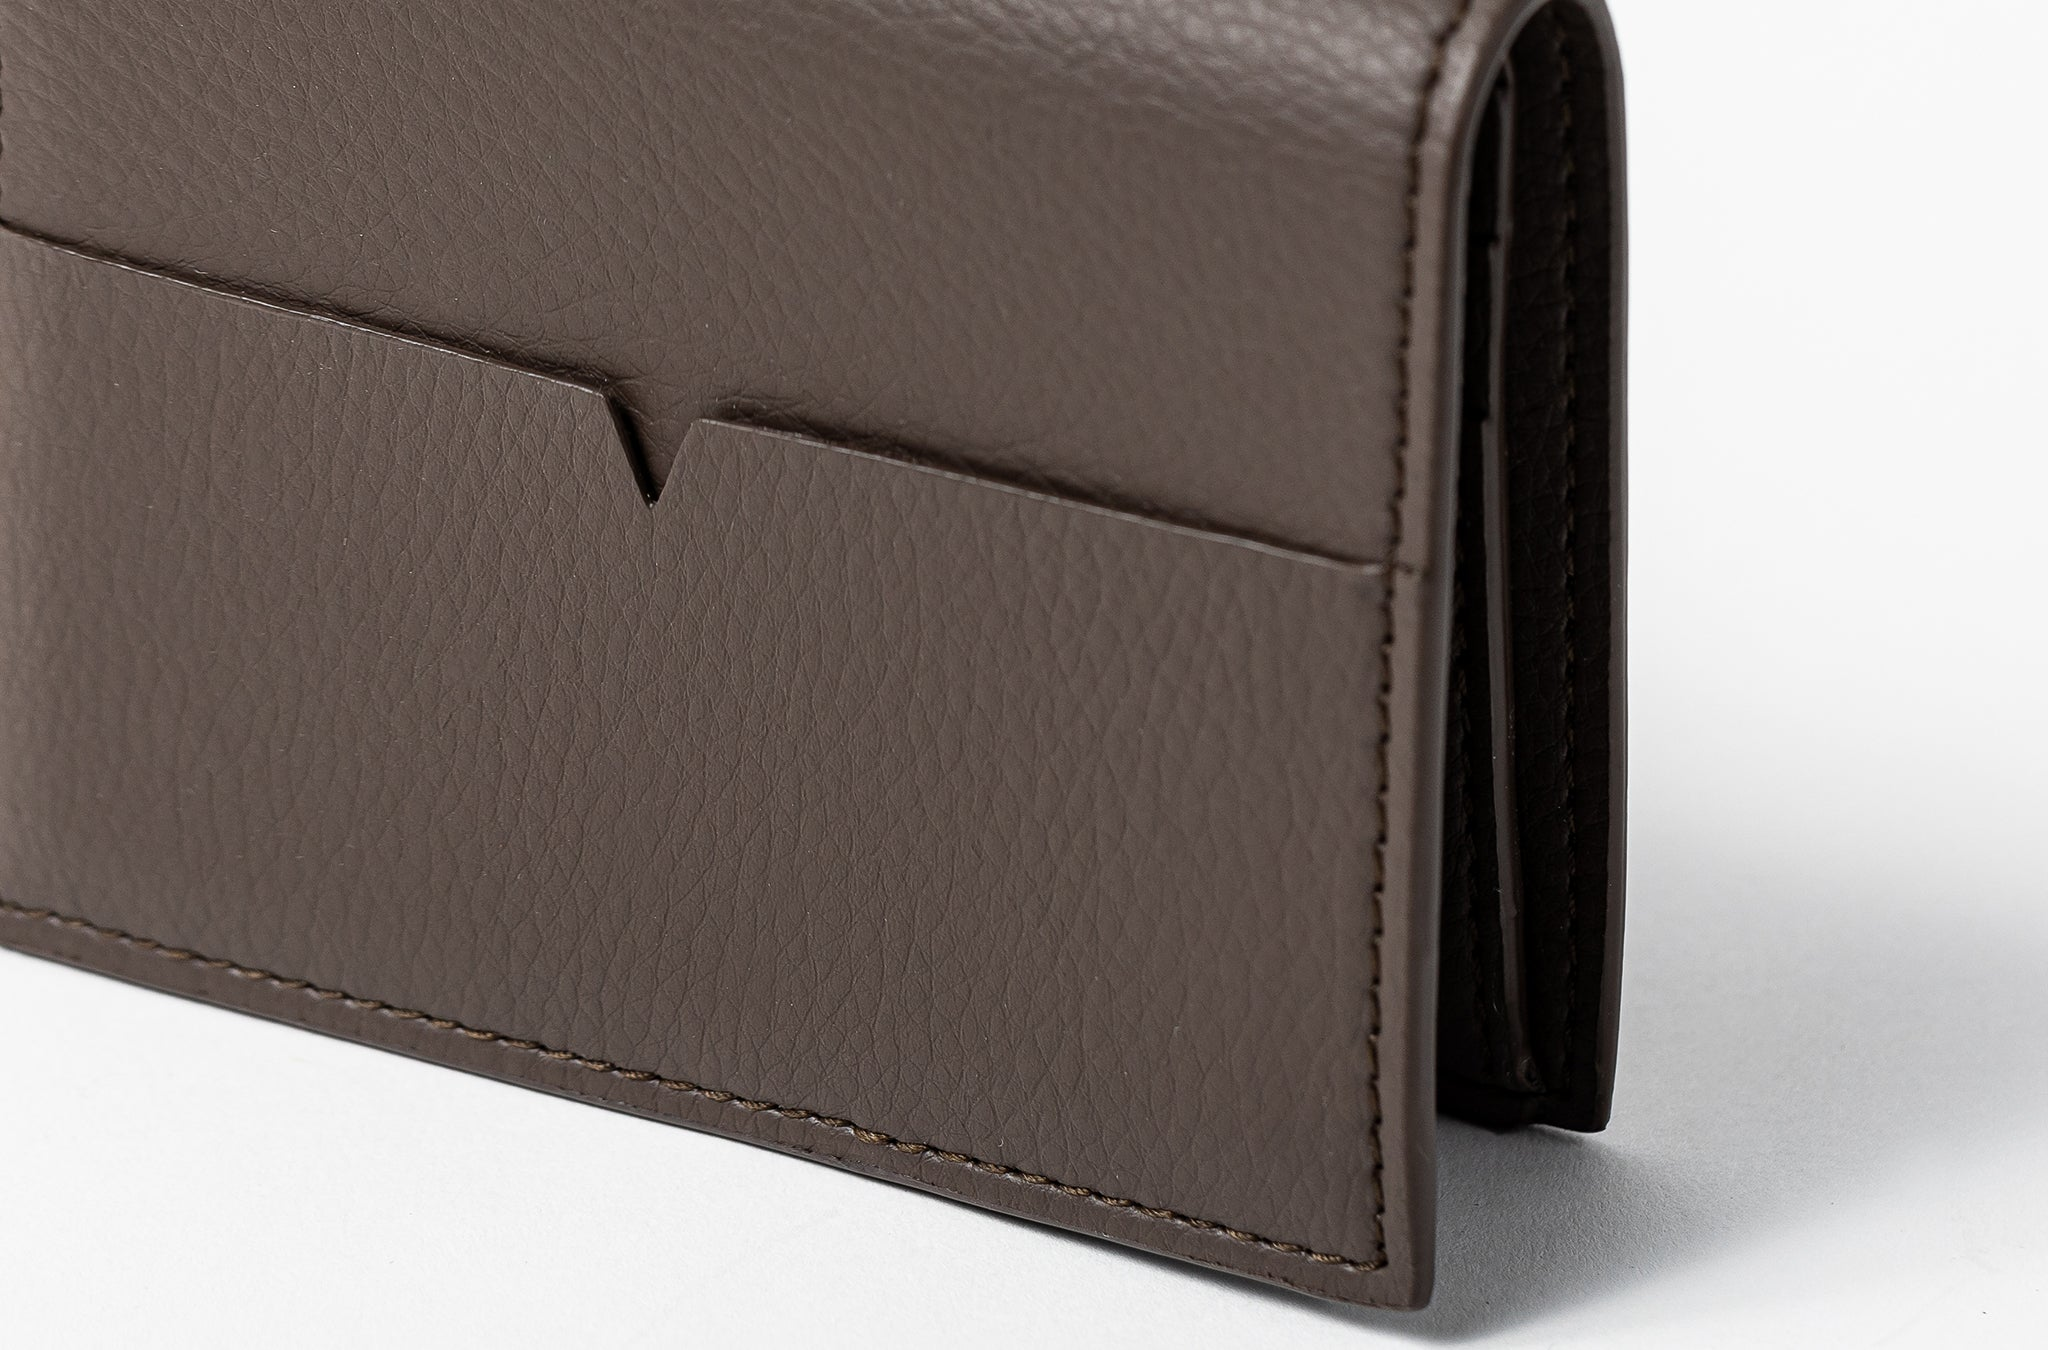 The Fold Wallet in Technik-Leather in Taupe